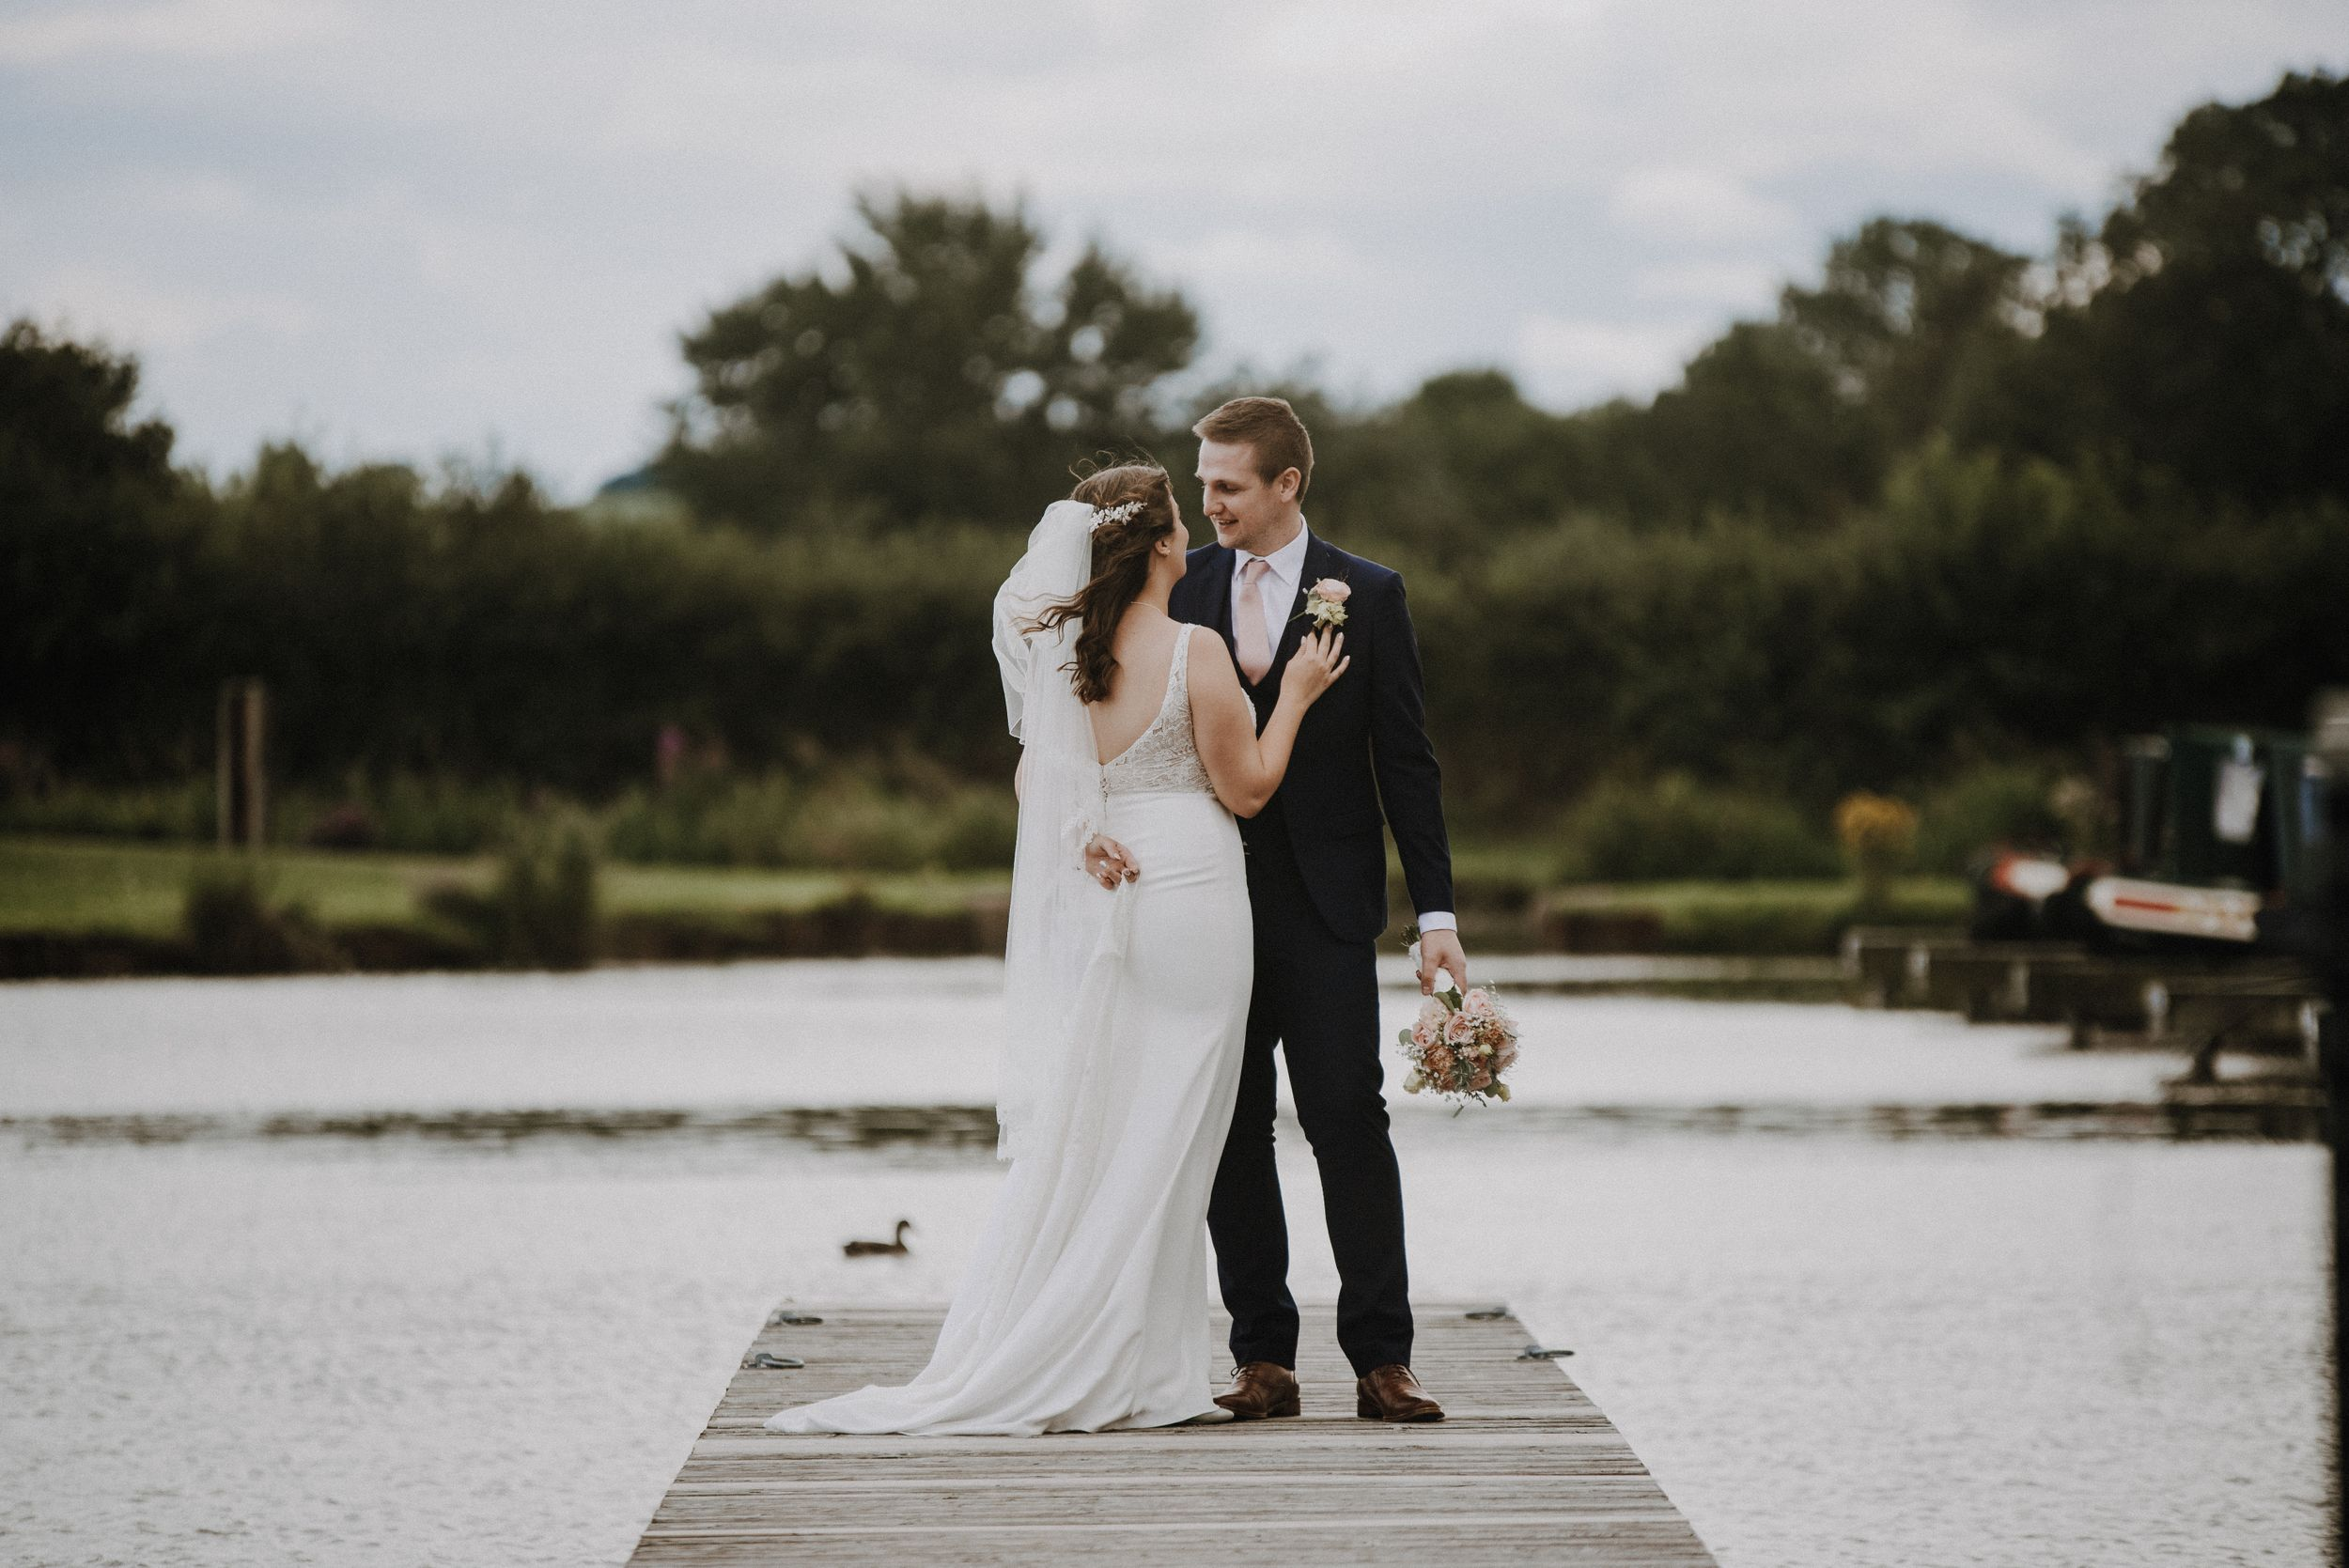 aston marina wedding venue, stone